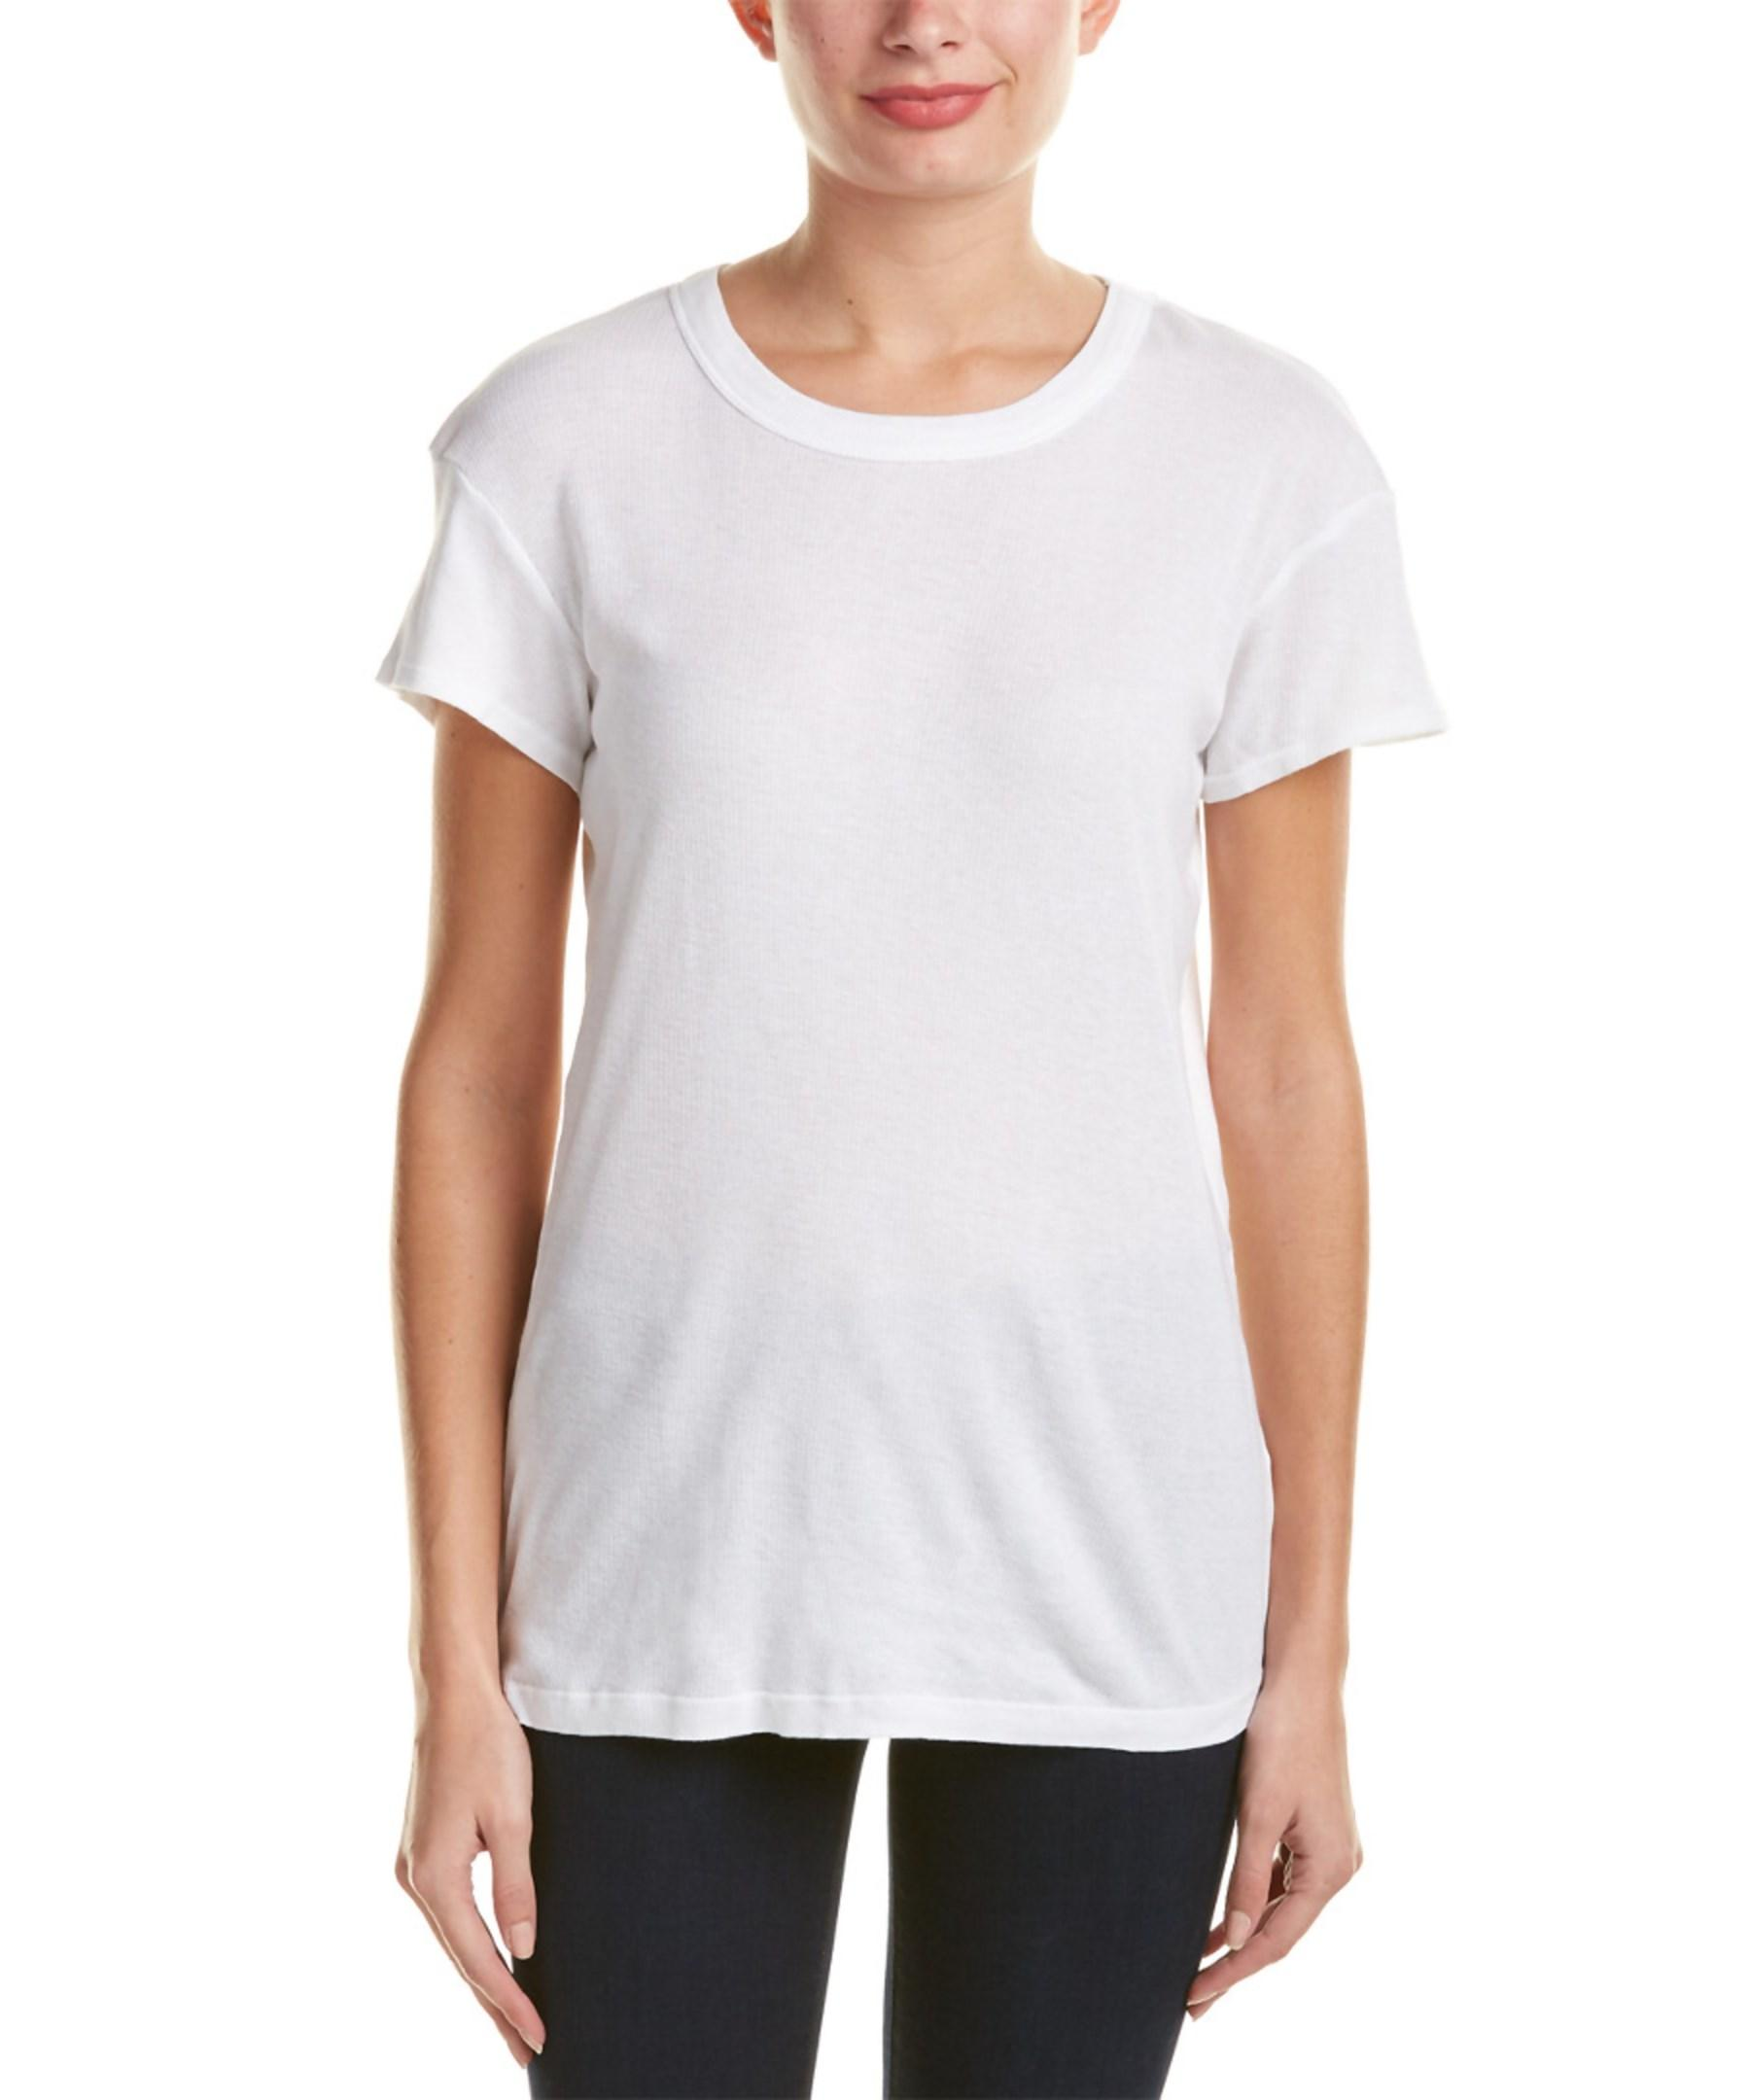 Michael stars ribbed cap sleeves t shirt in white lyst for Michael stars tee shirts